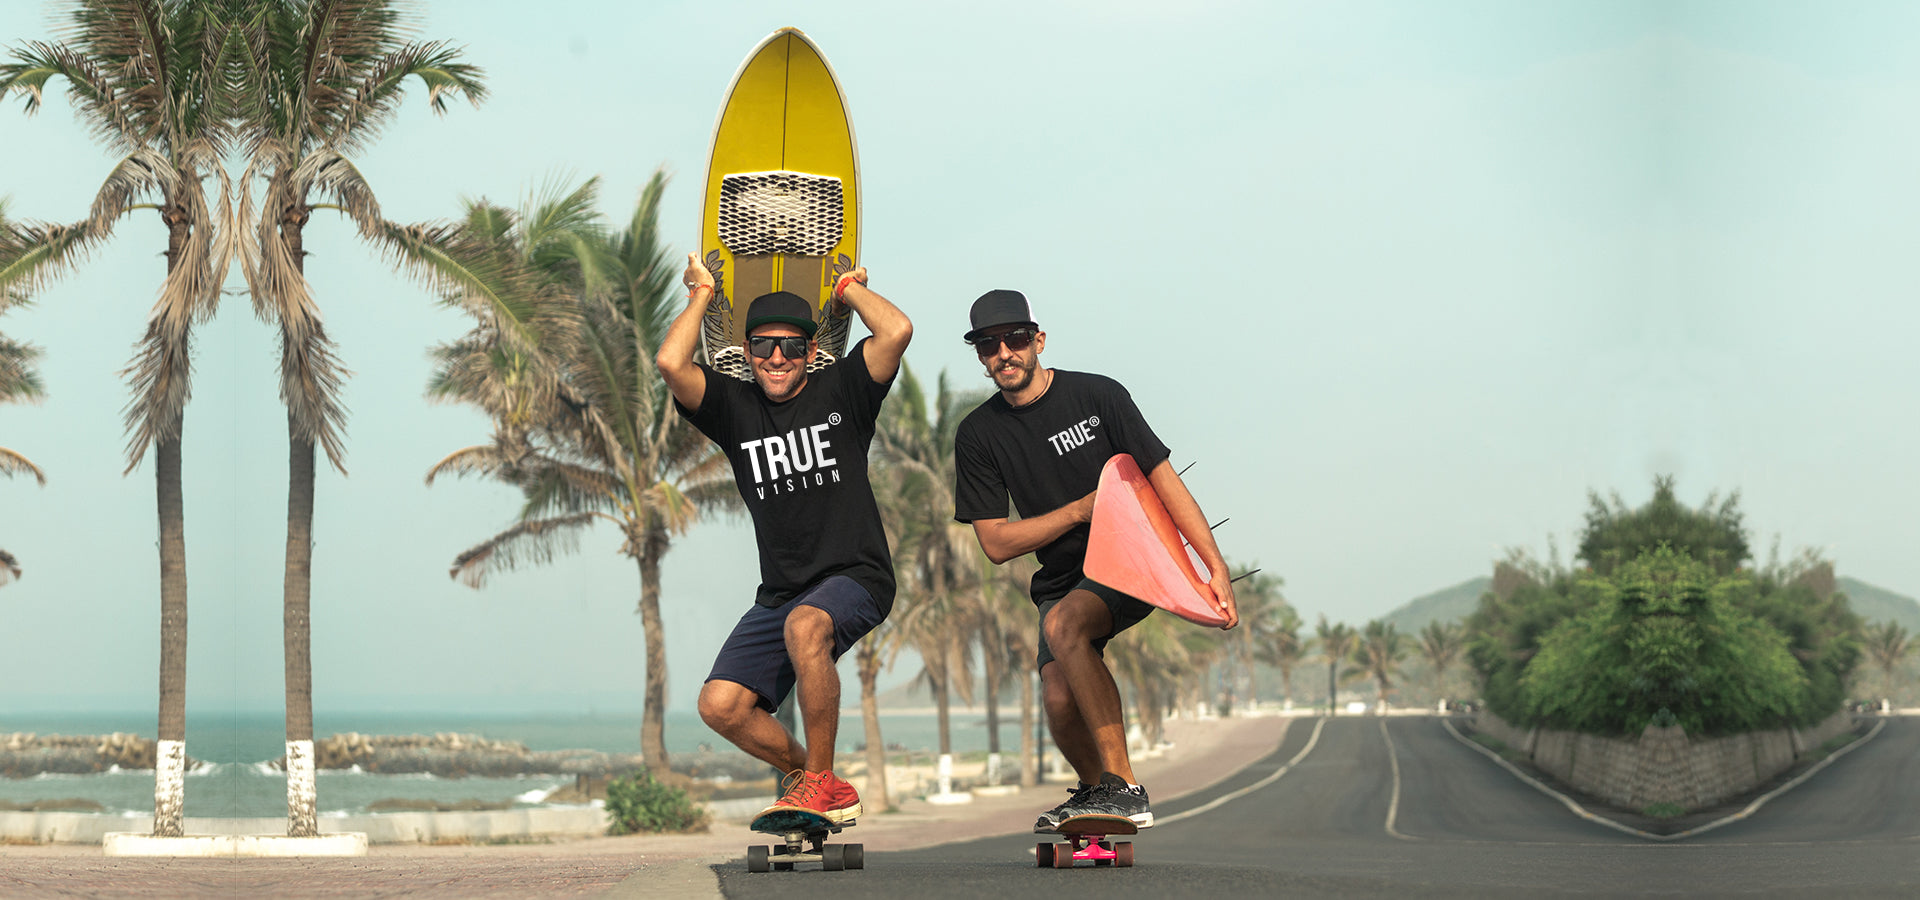 TRUE VISION BRAND ADVENTURE - ADVENTURERS AMBASSADOR PROGRAM FOR SURF SKATE SNOWBOARD BMX AND MORE